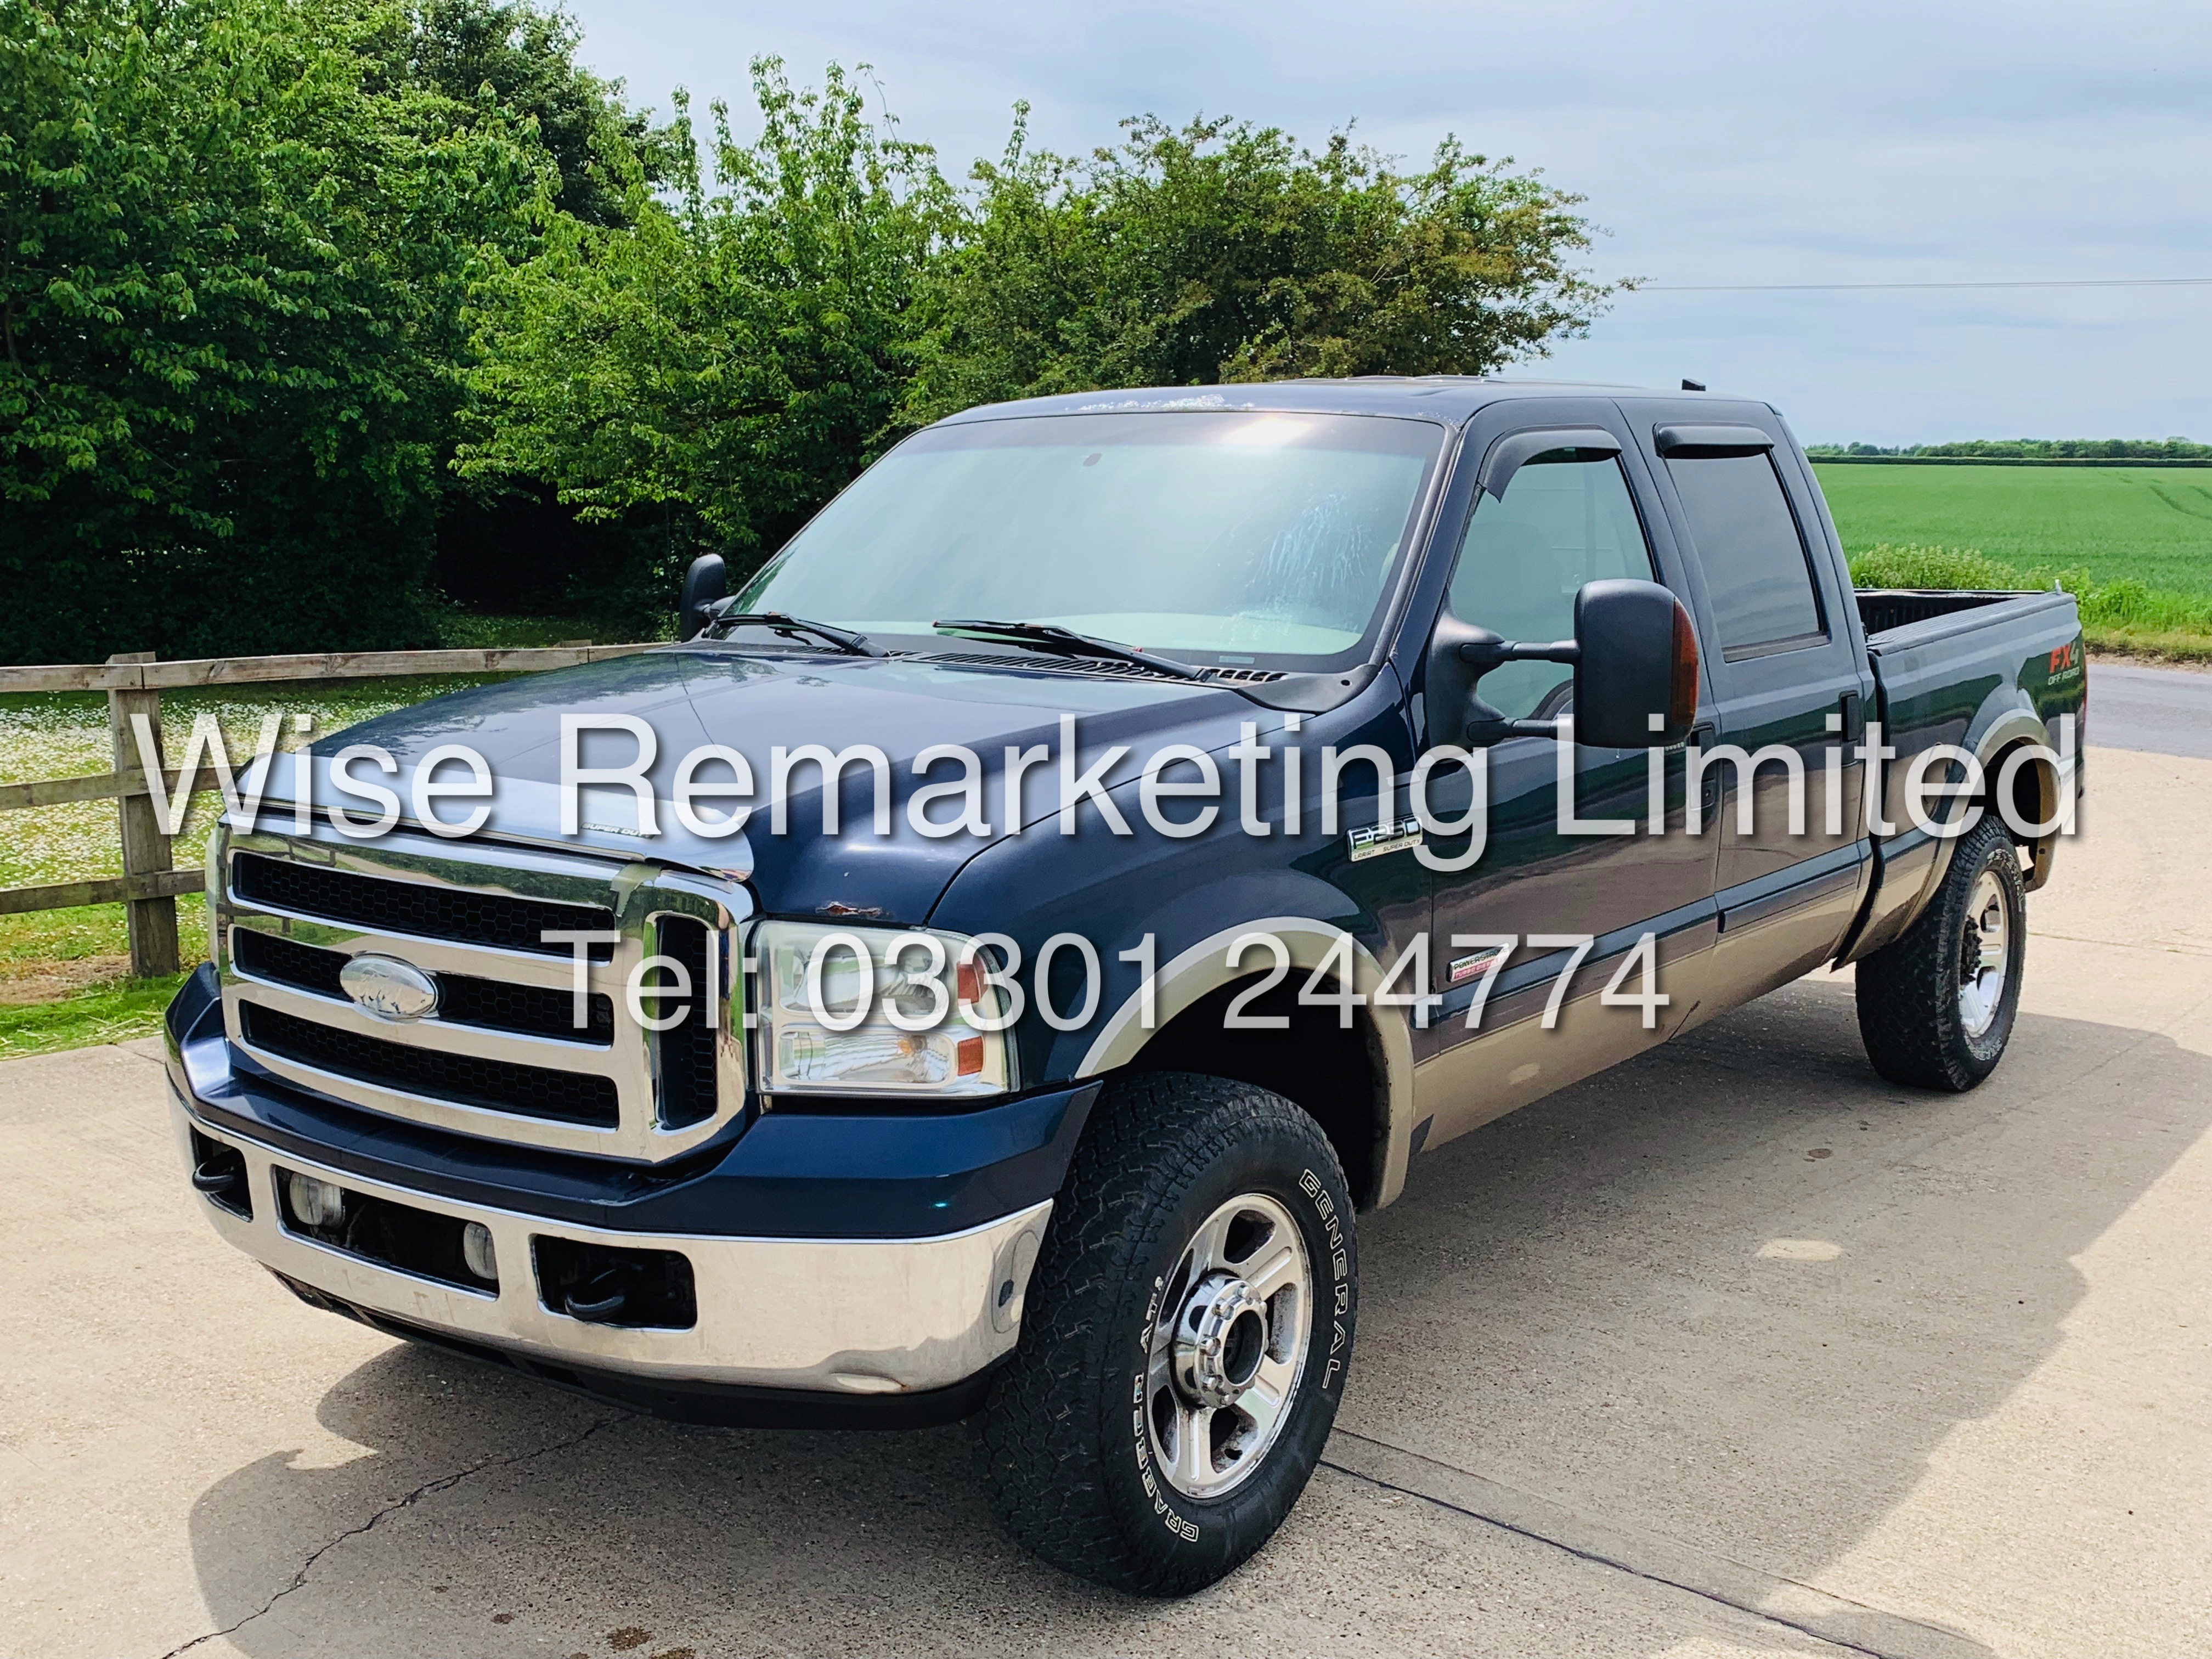 FORD F-250 6.0L V8**DIESEL**2007**4X4*LARIAT SPEC**DOUBLE-CAB**ULTRA RARE**FRESH IMPORT** - Image 2 of 18